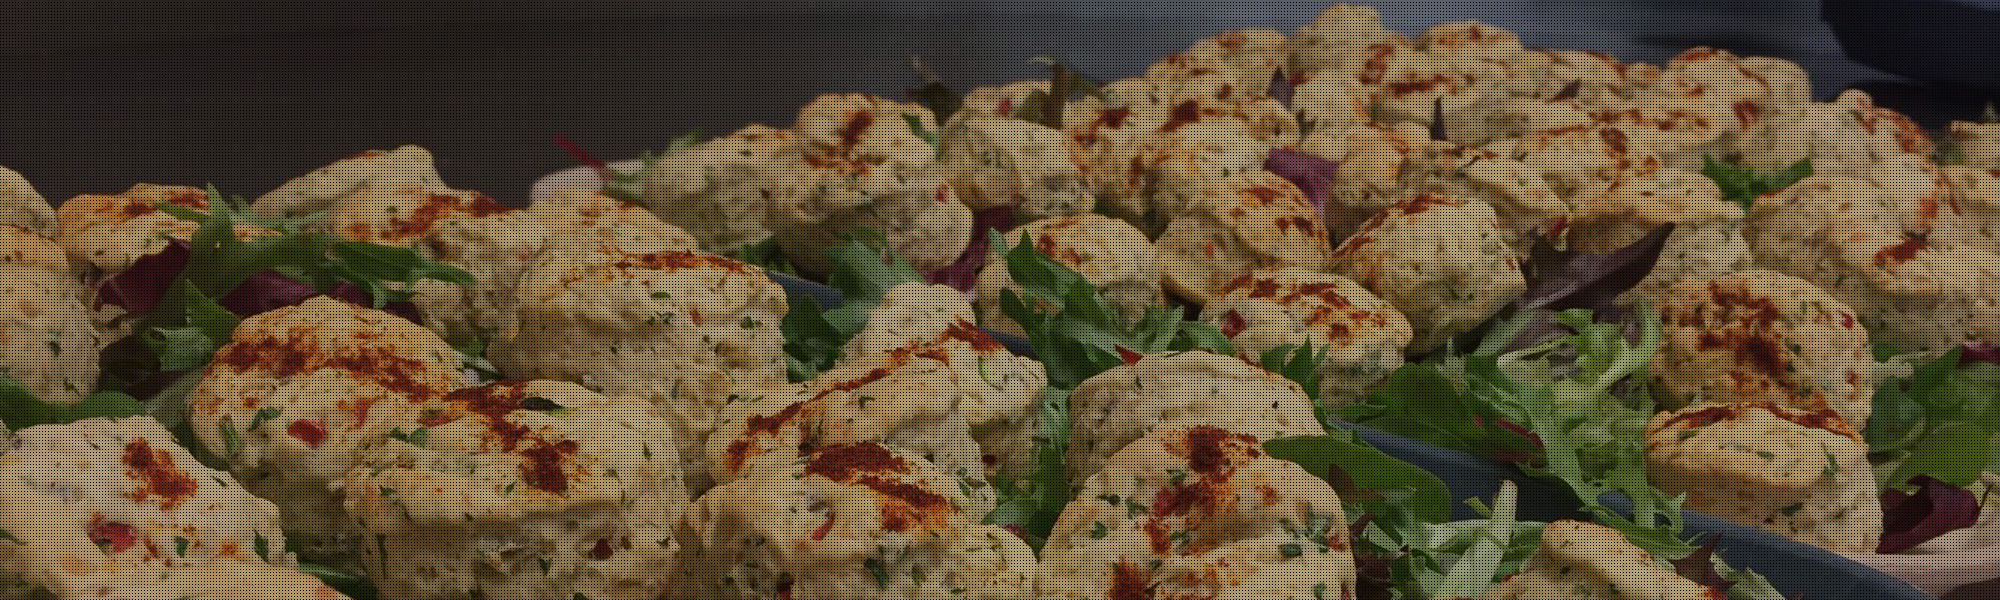 We cater for Functions / Xmas party for residents and families in aged care facilities